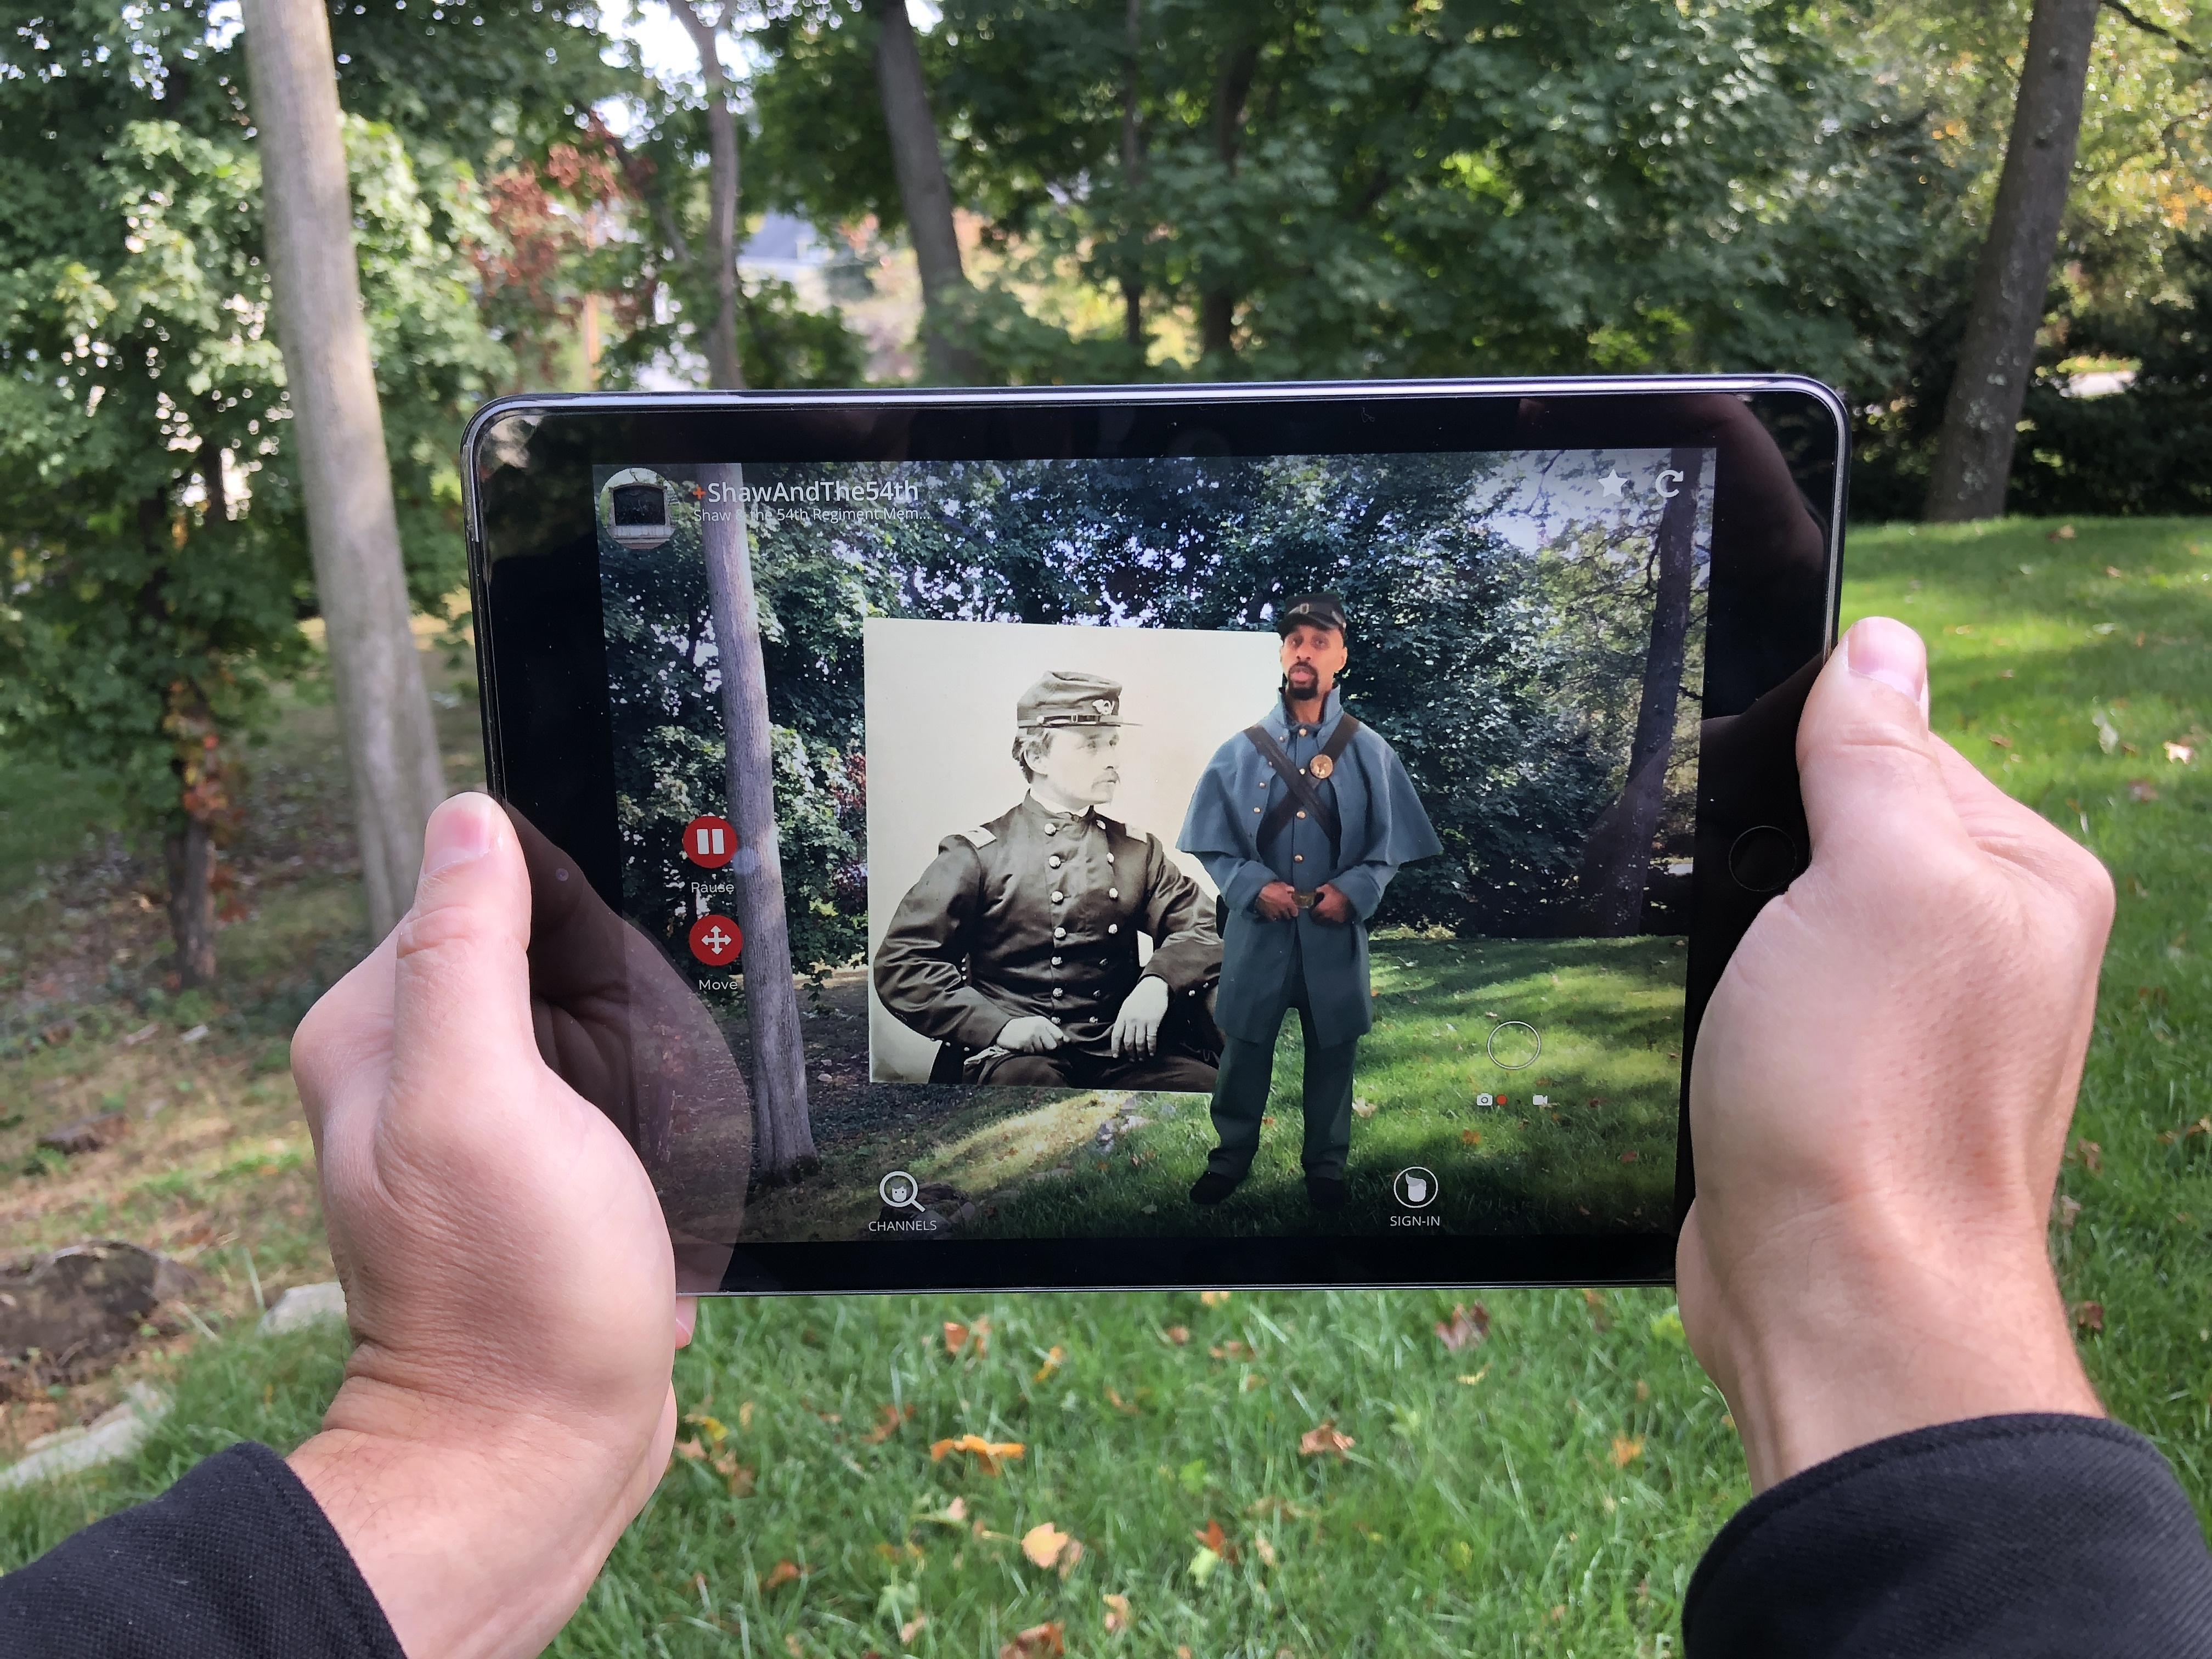 Two hands holding a digital tablet with an actor in Civil War soldier garb giving a lecture.